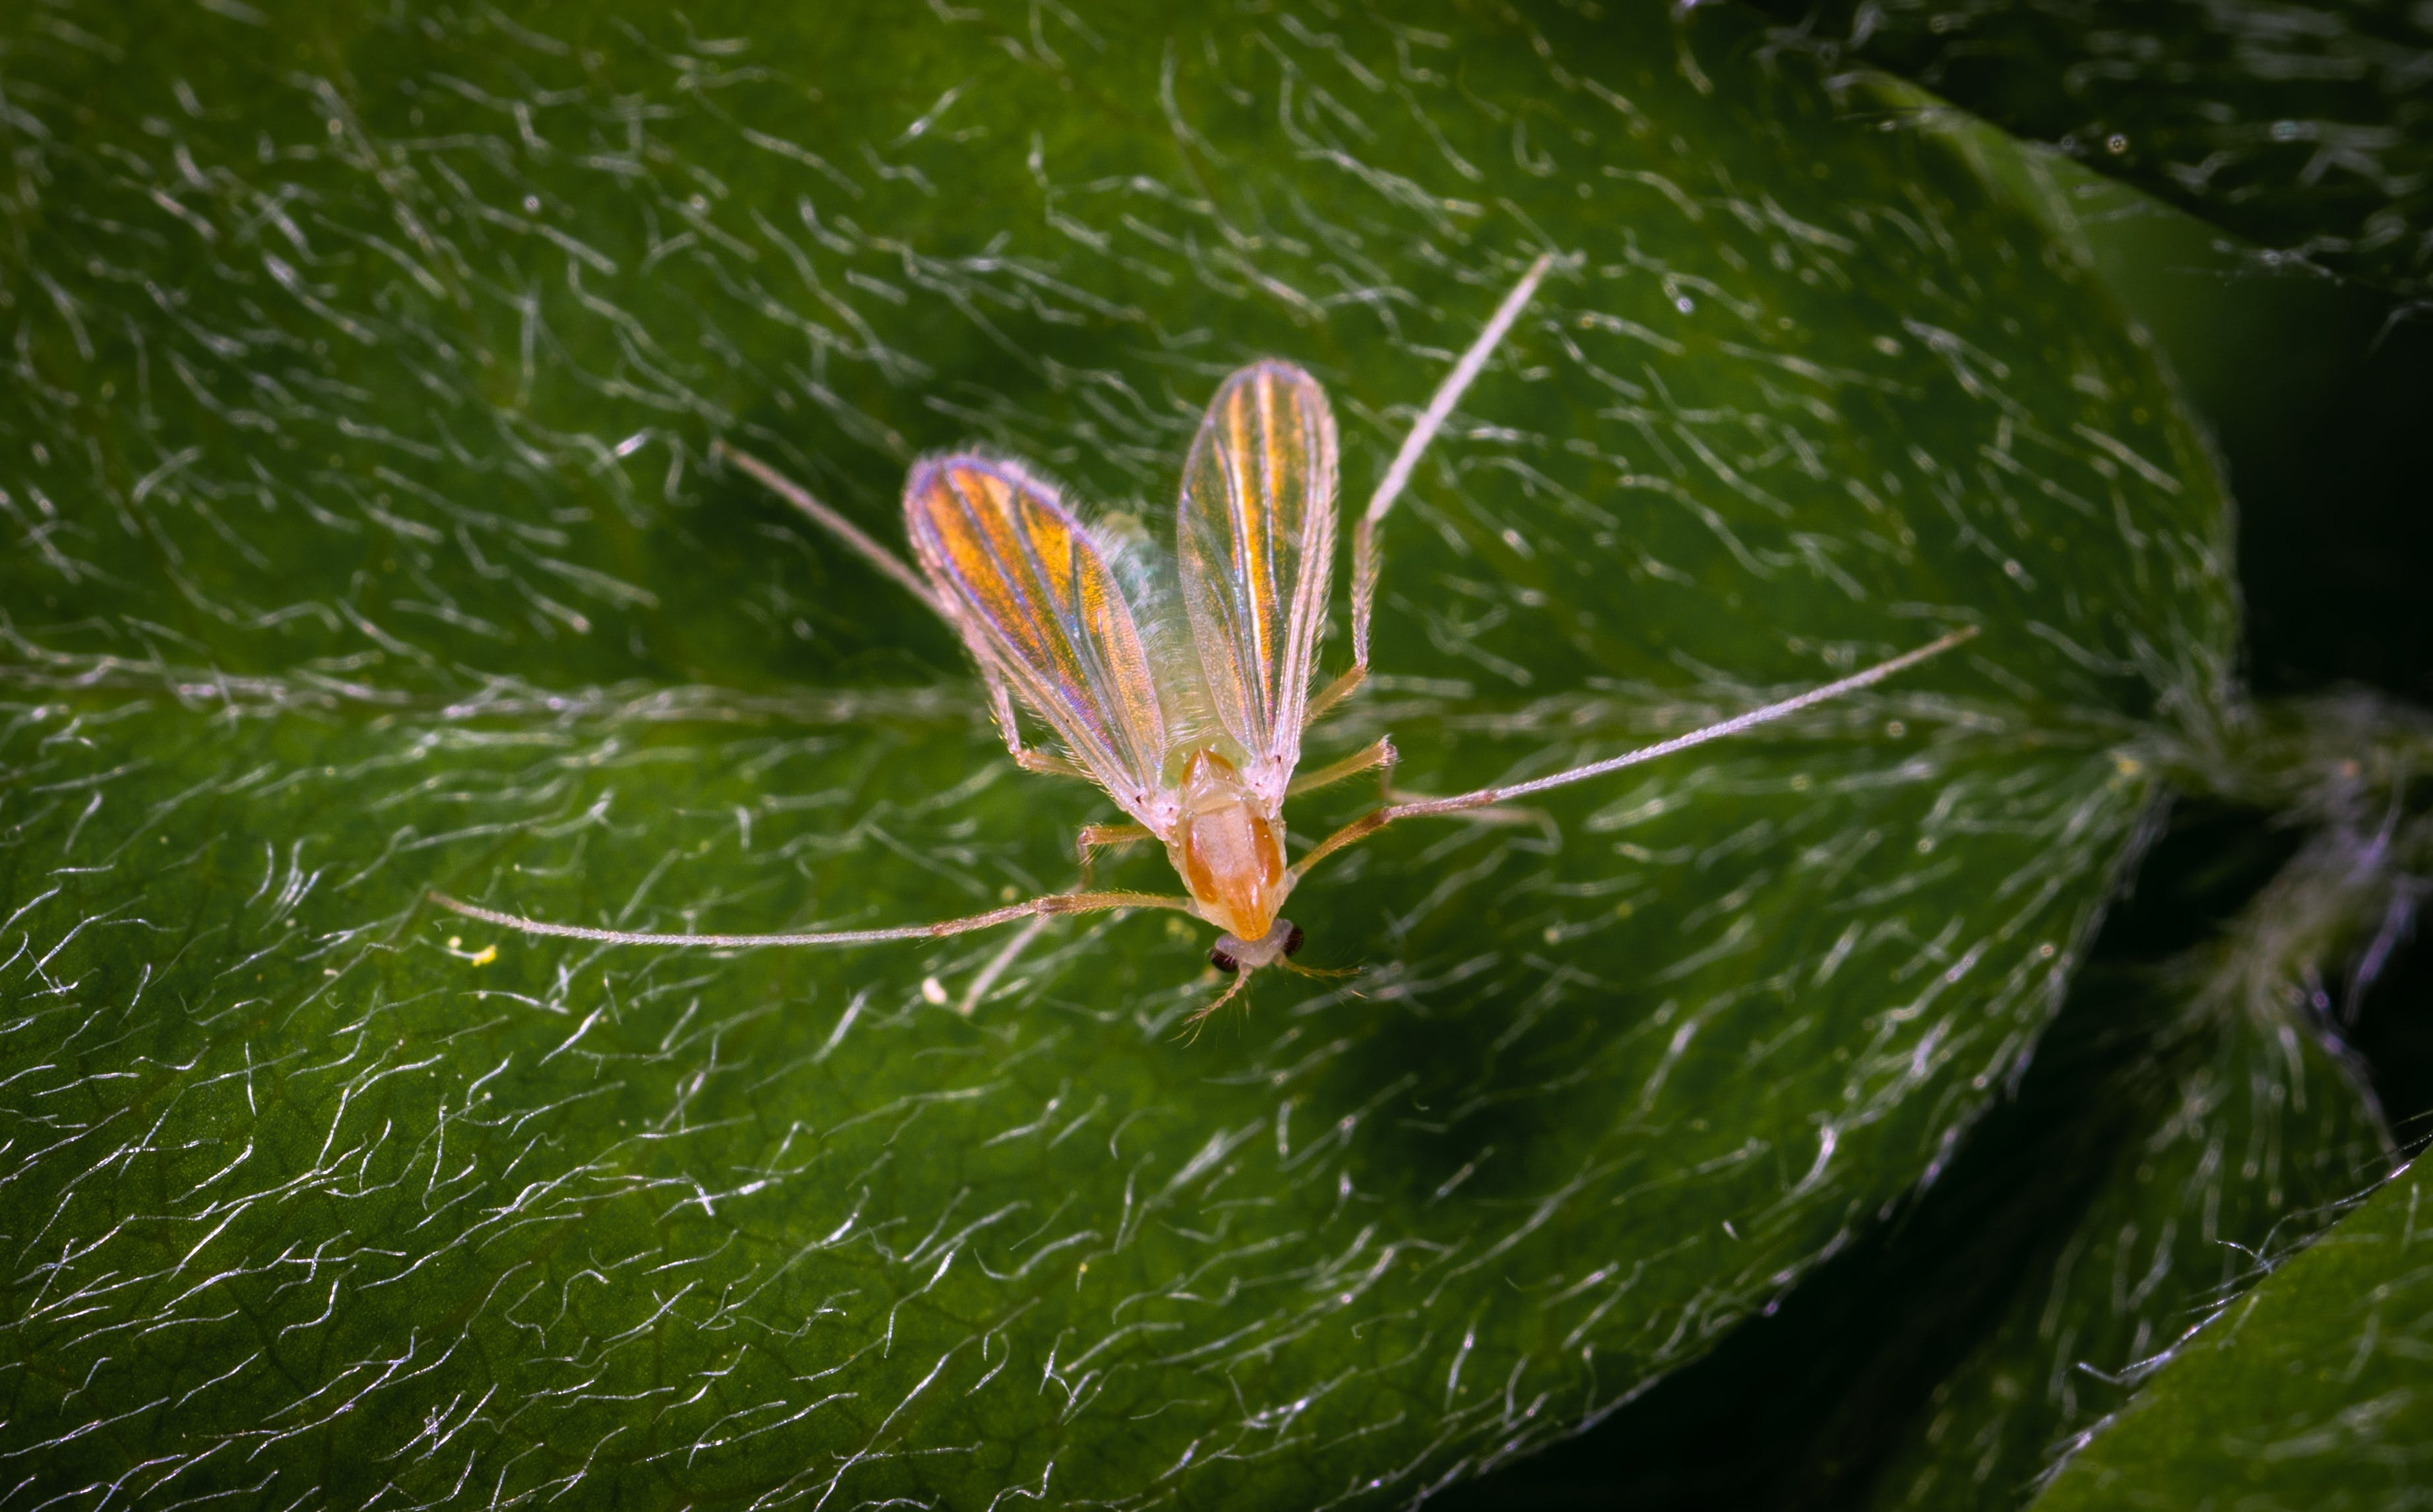 Brown Insect On Leaf